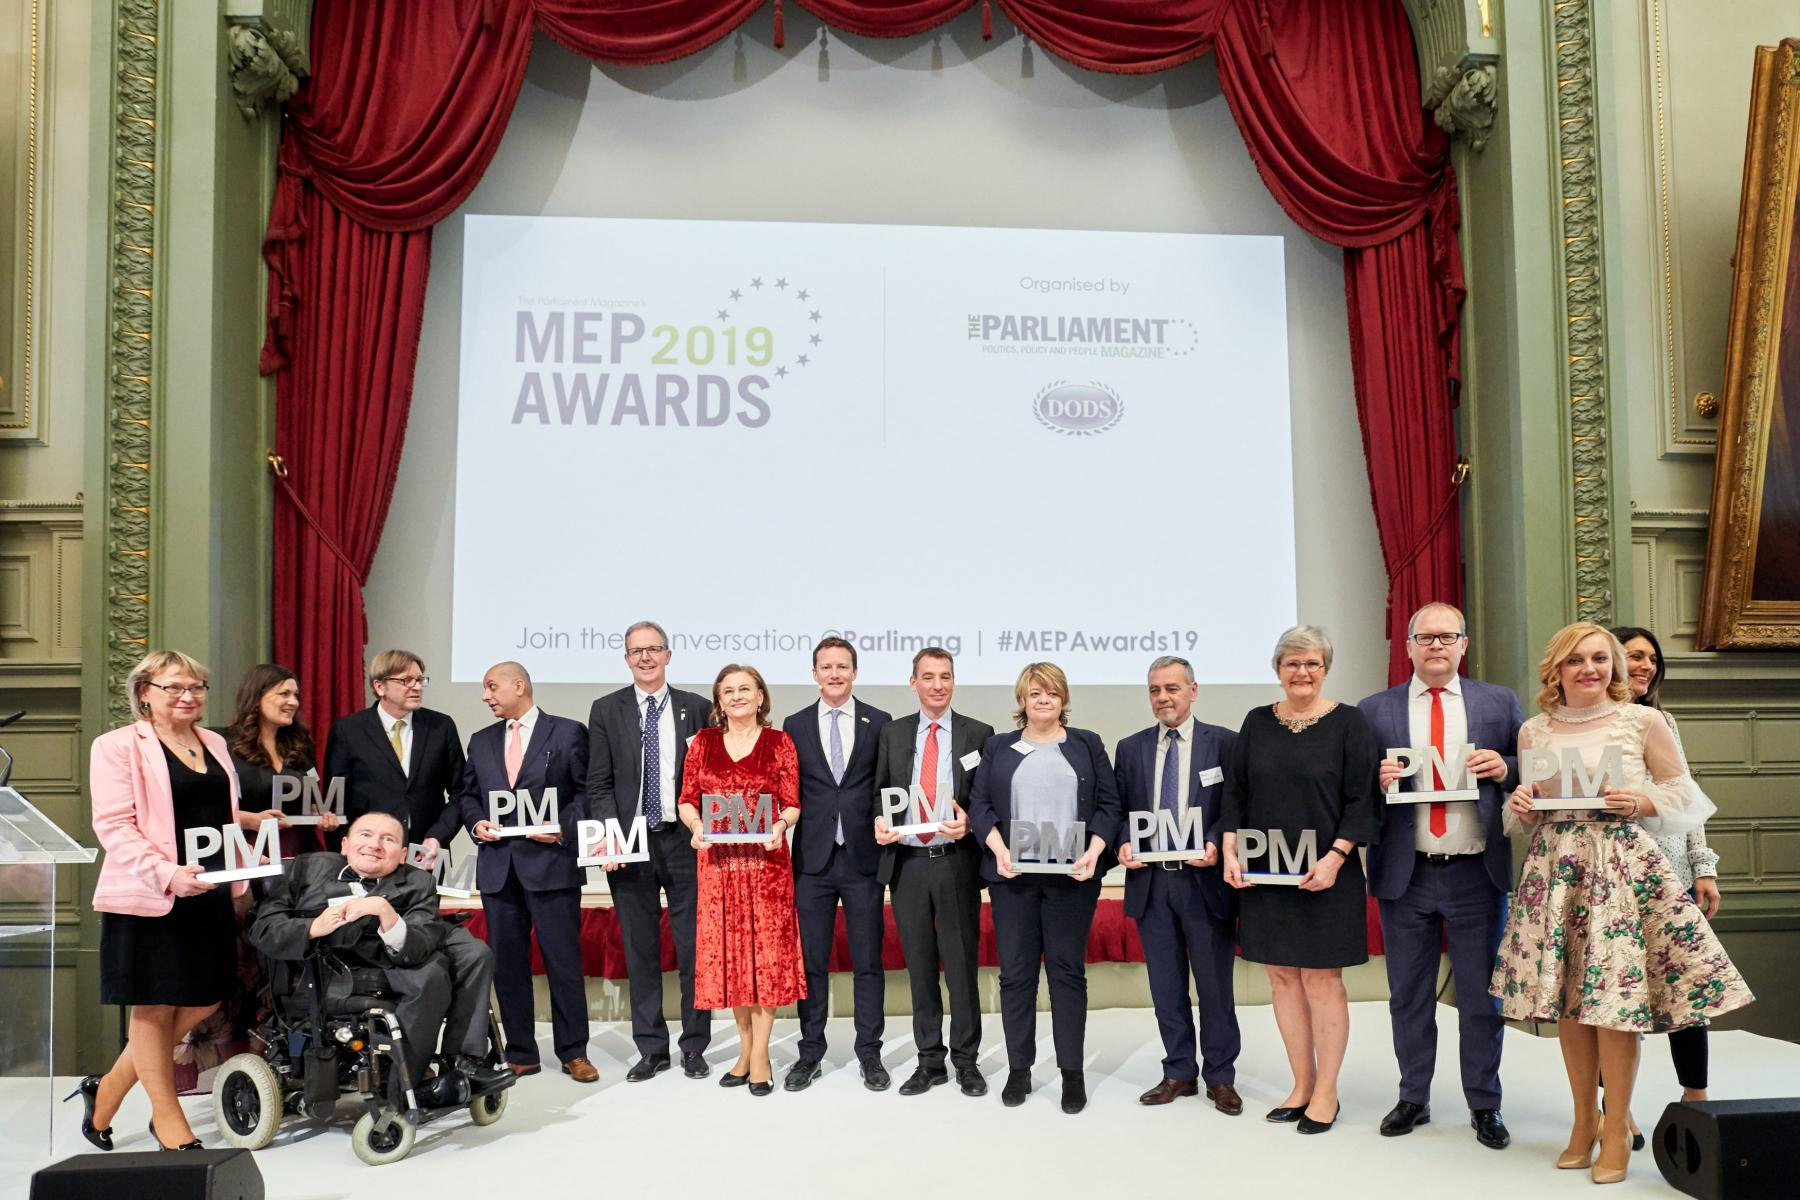 2019-03-20 parliament mep-awards 0723.jpg